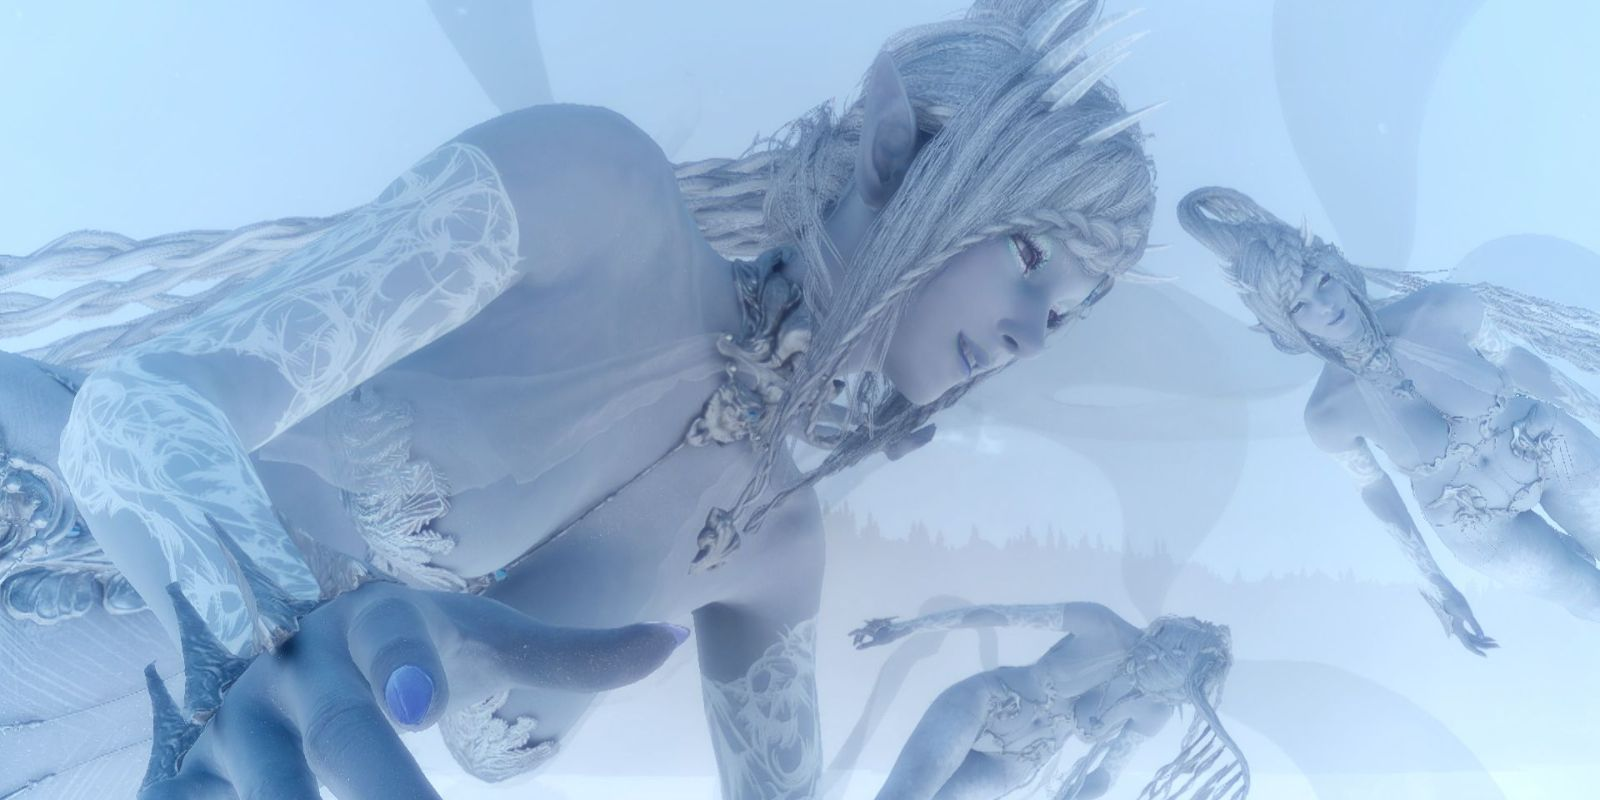 The Most Powerful Versions of Final Fantasy's Shiva Summons